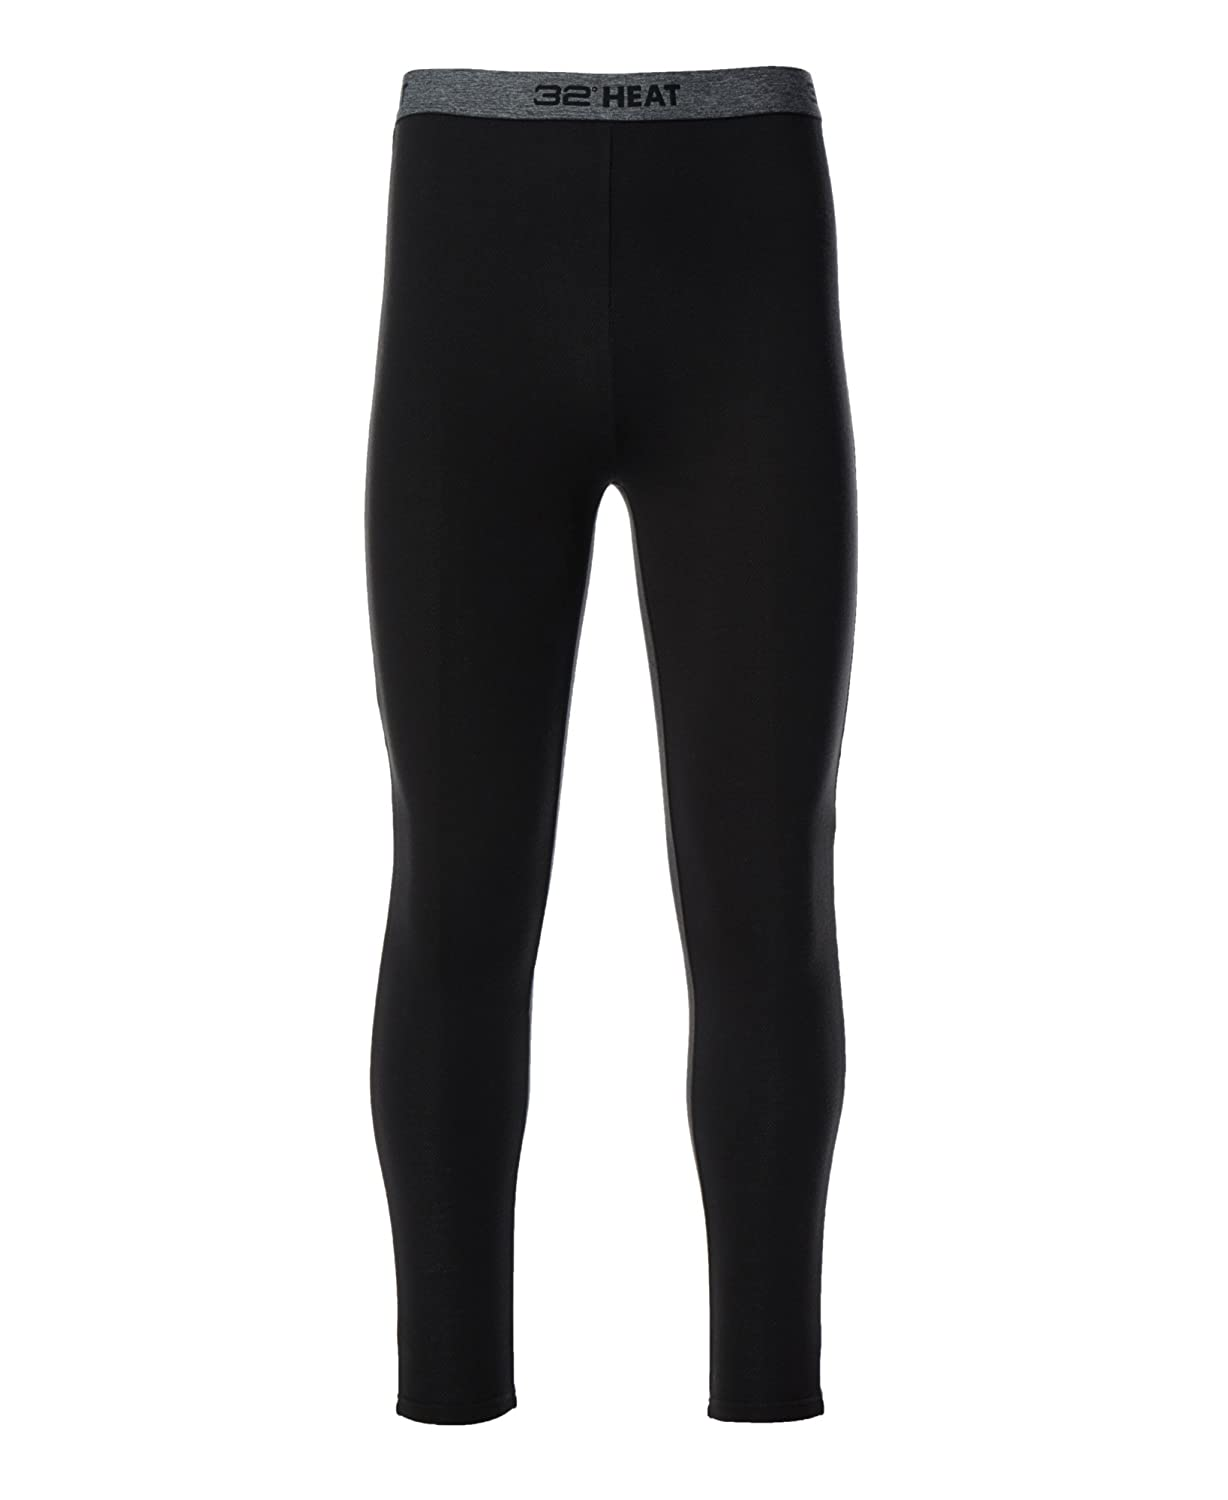 32 DEGREES Men Heat Performance Mesh Baselayer Pant